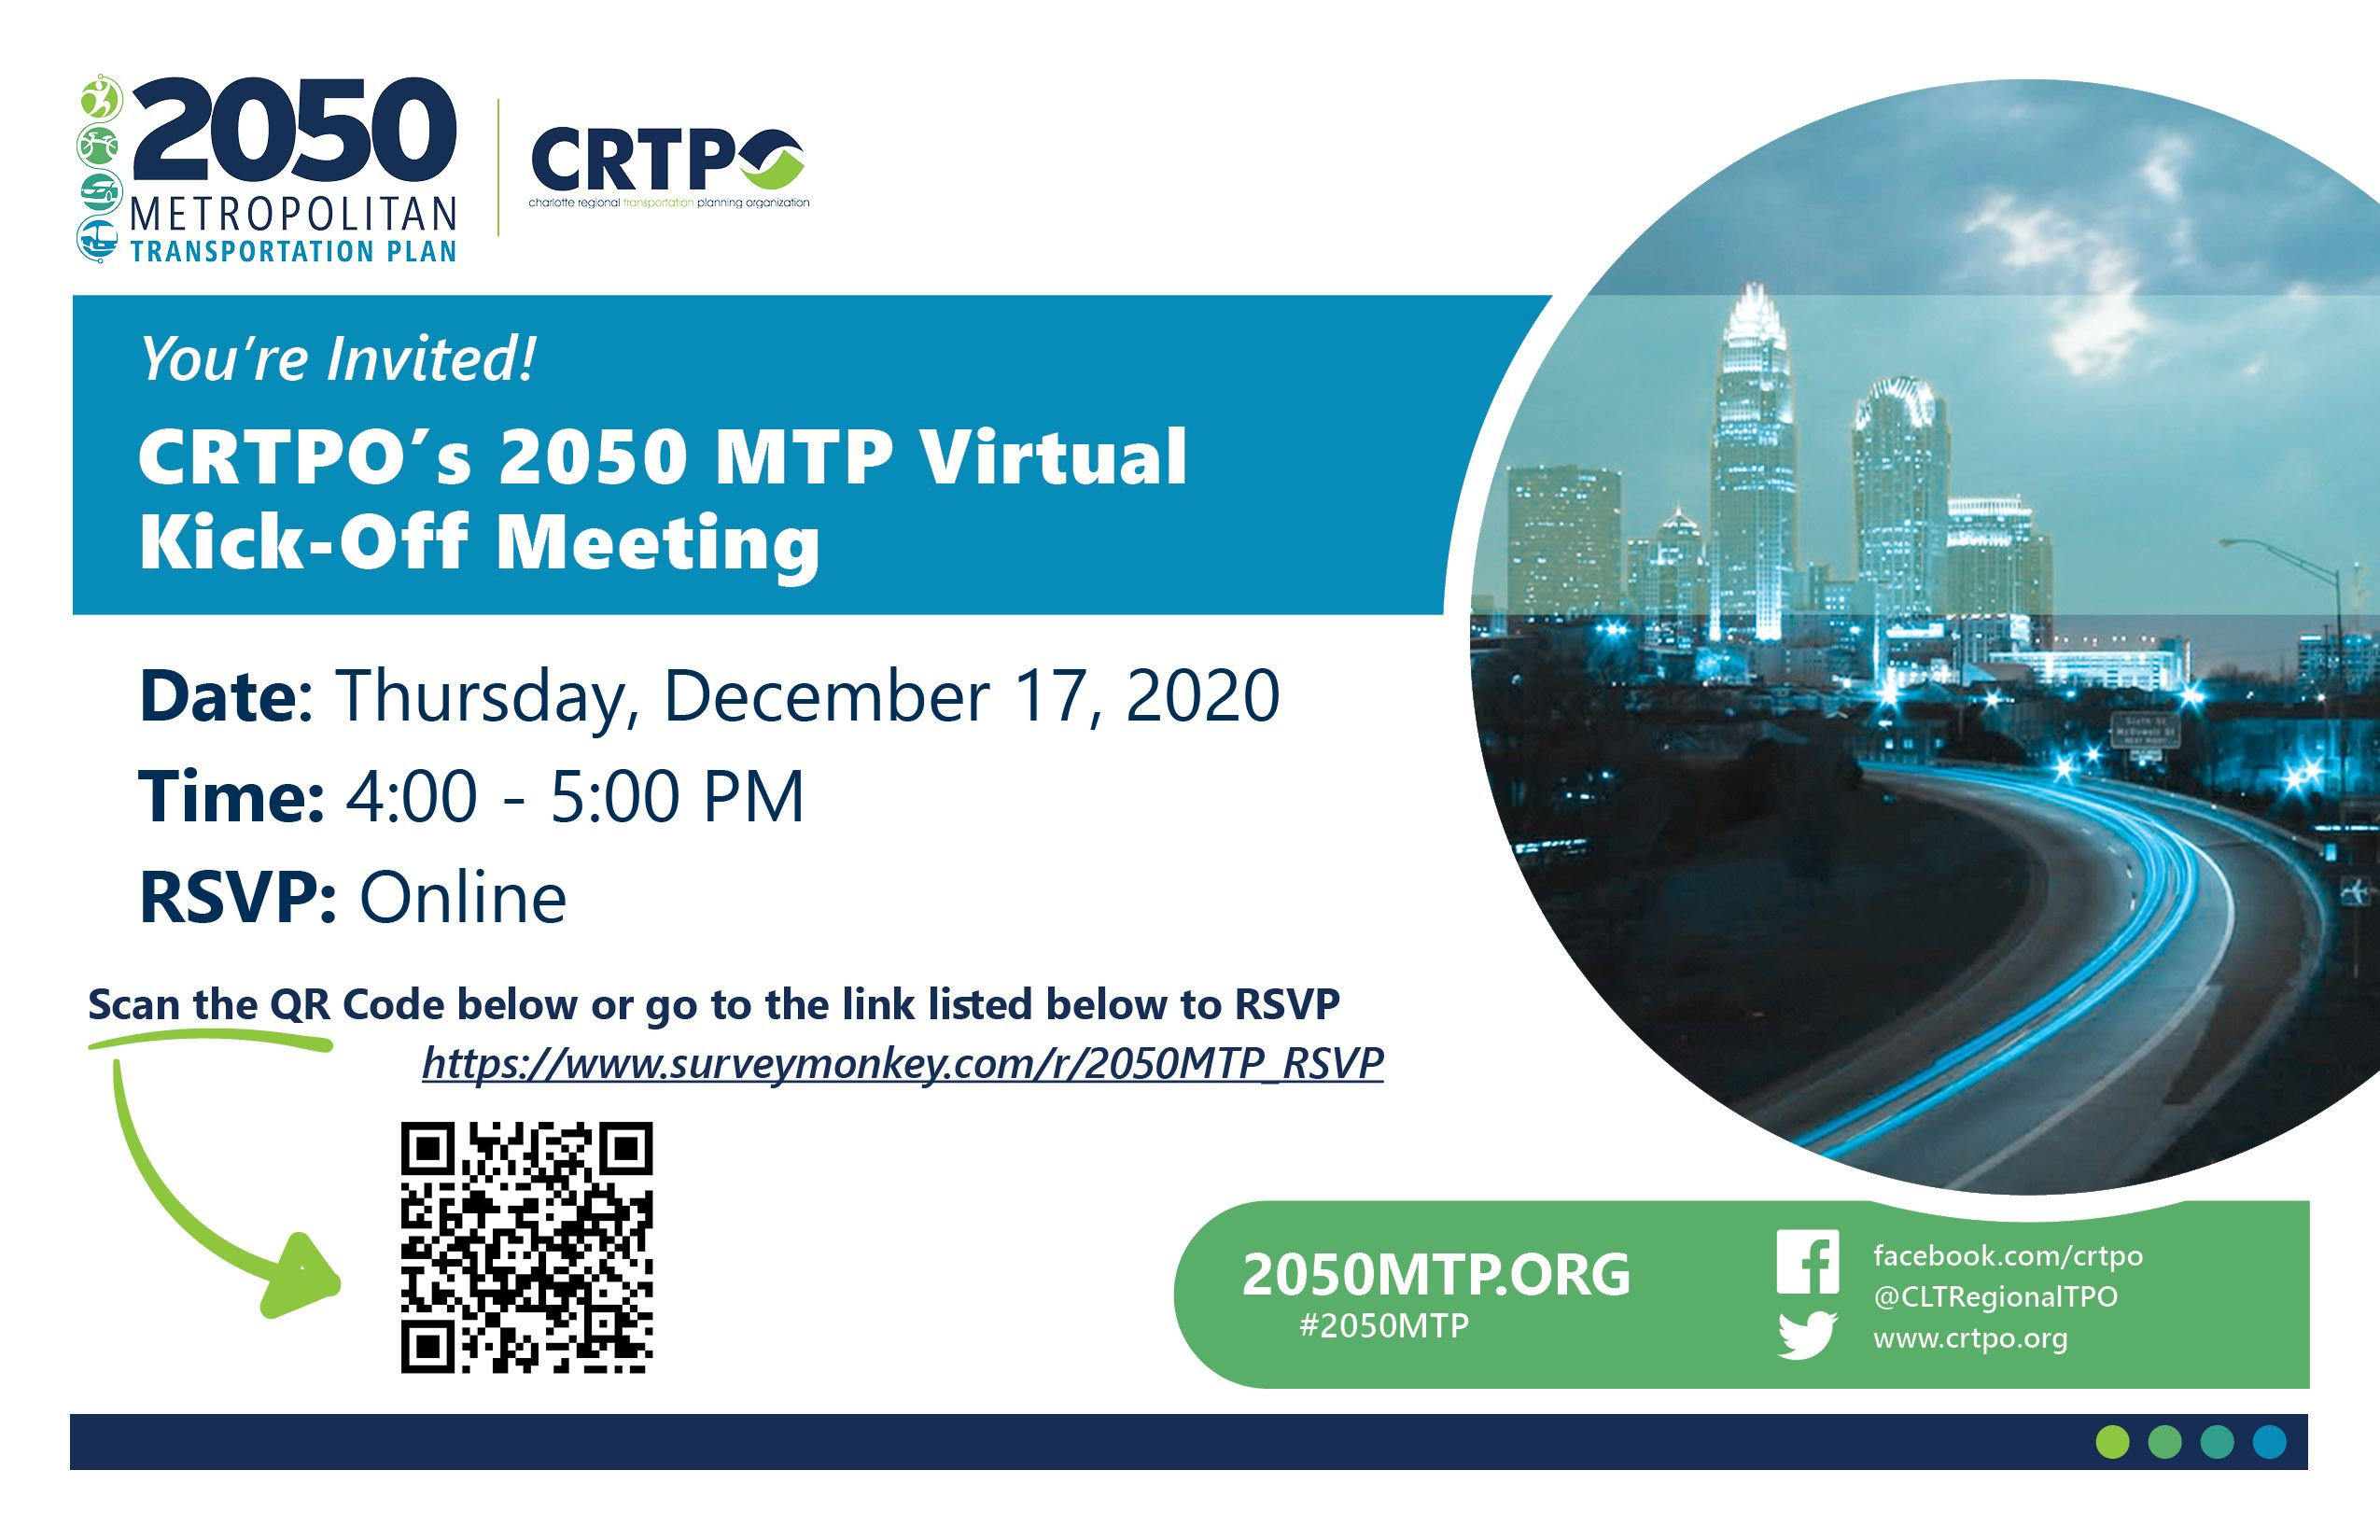 2050 MTP_Virtual Meeting Invitation_Horizontal_20201123